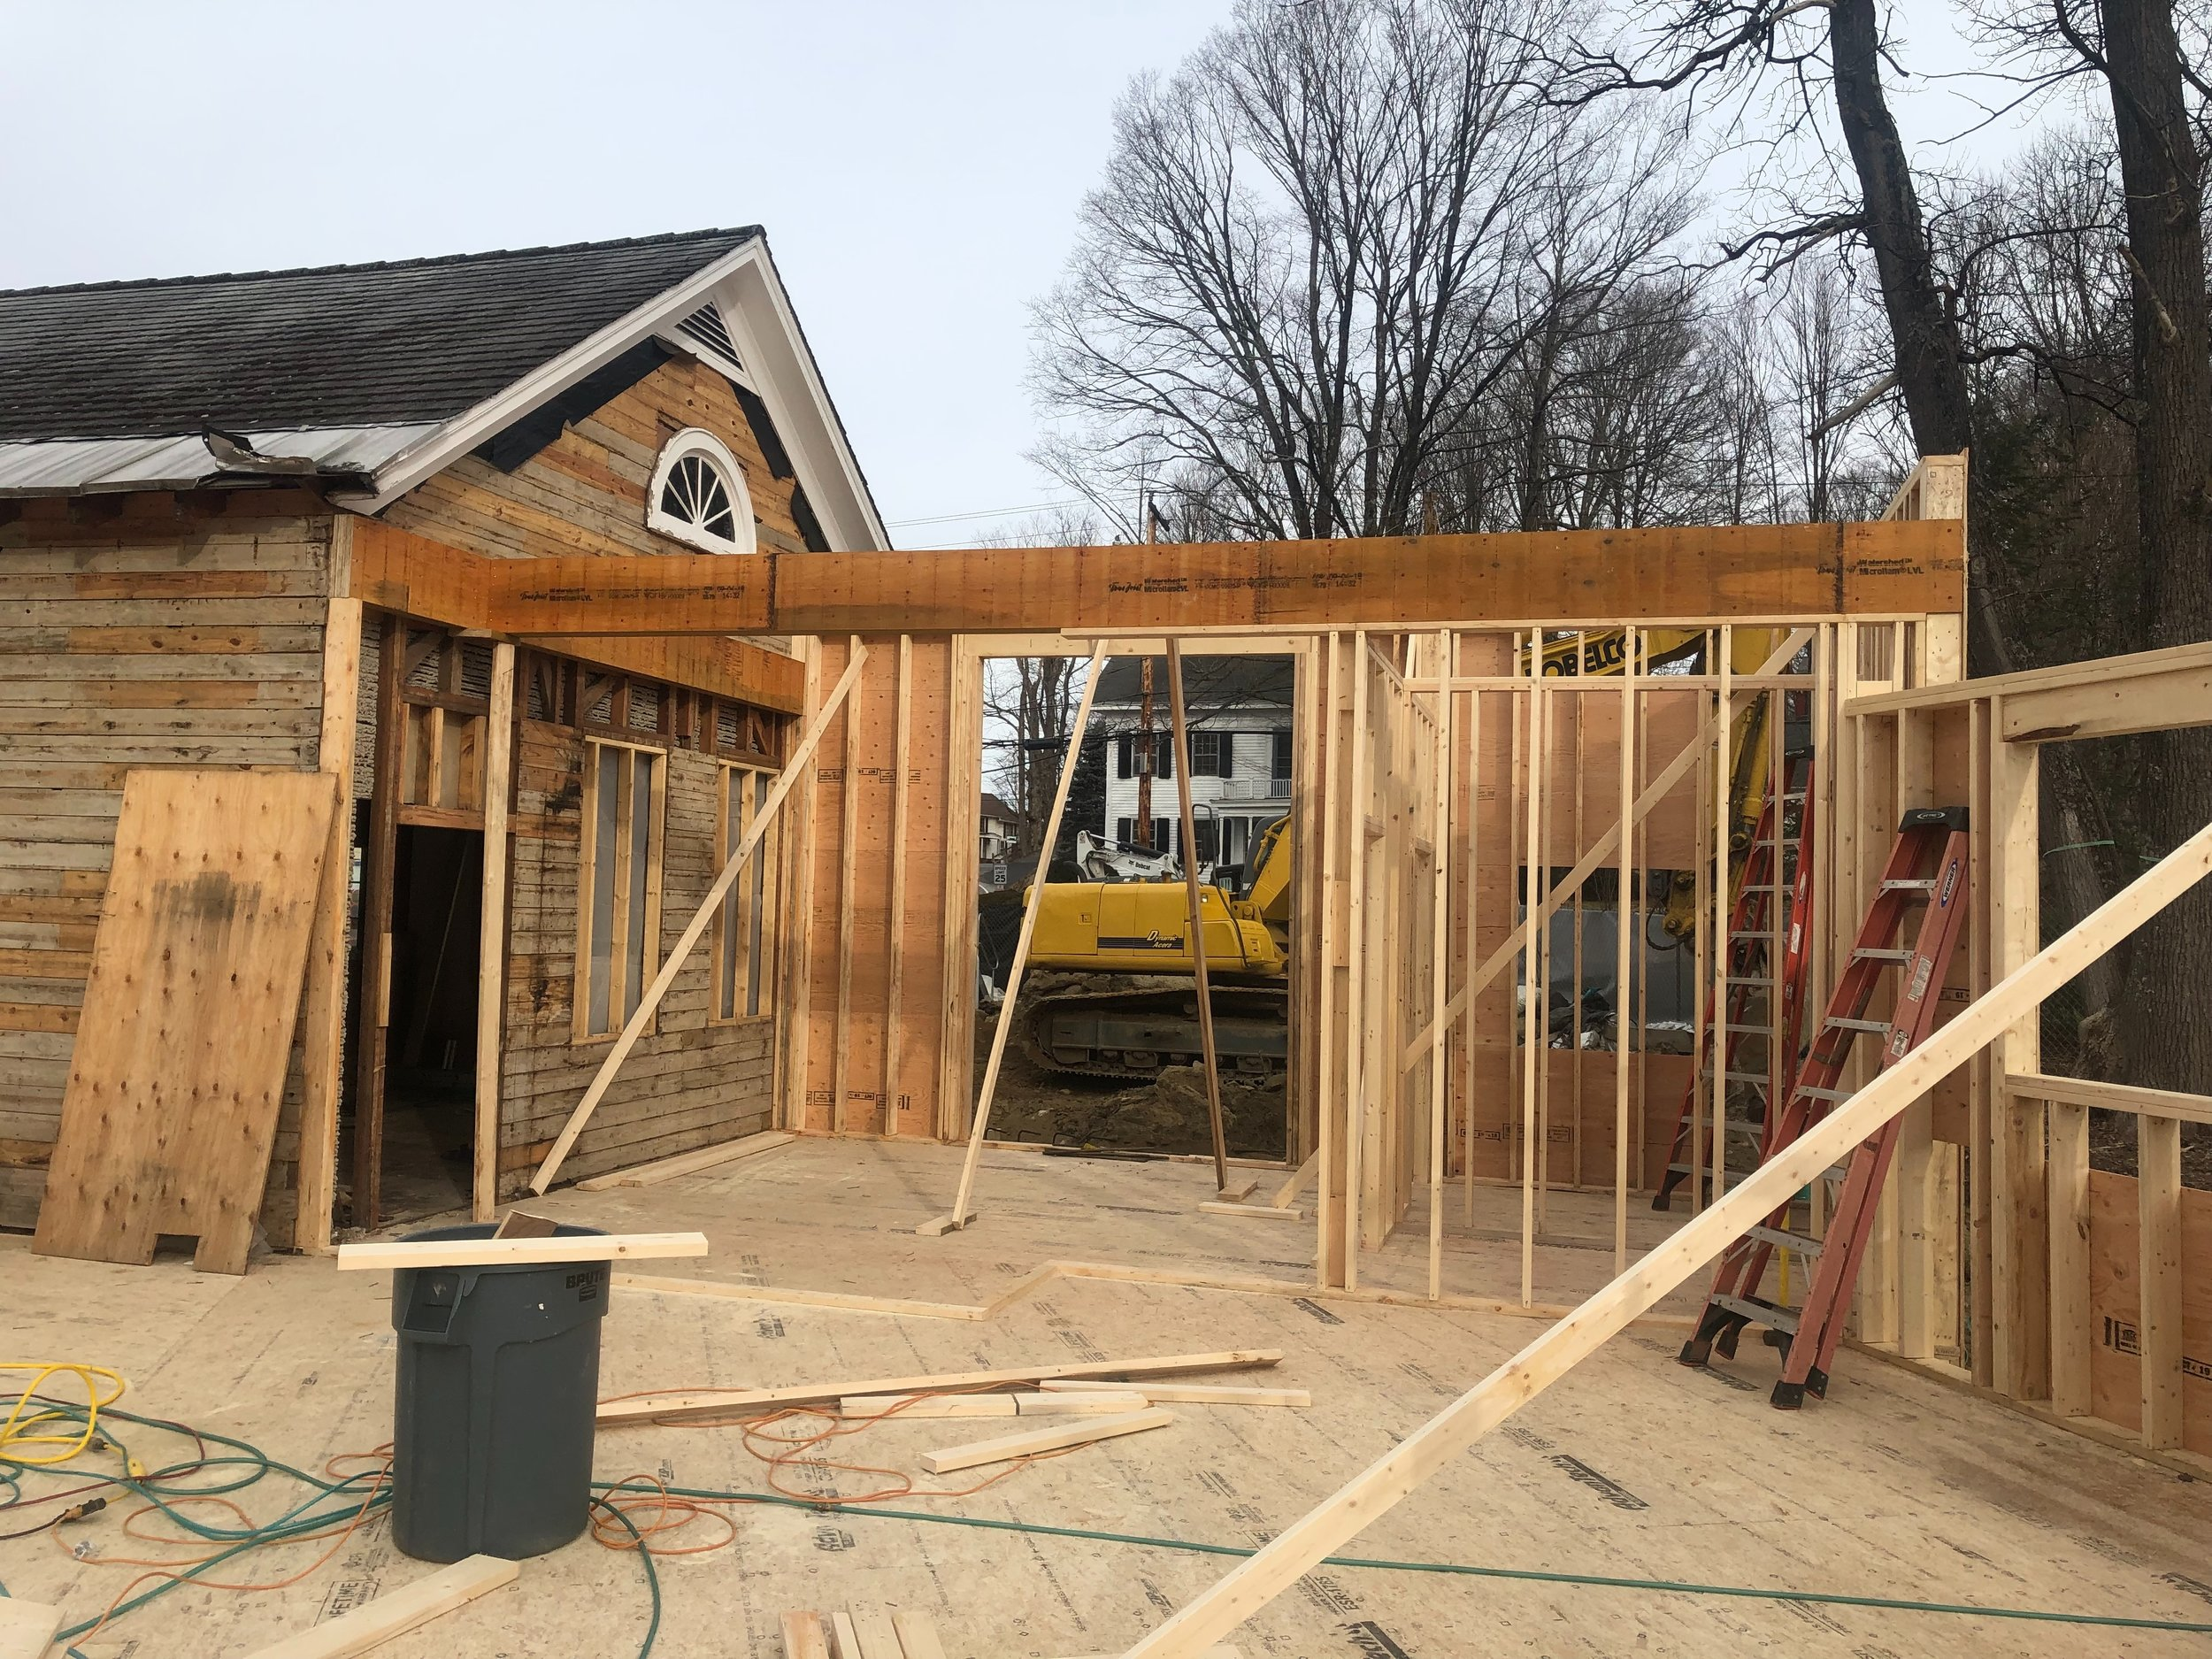 STRUCTURAL BEAM SUPPORTING CEILING AND ROOF OVER ENTRYWAY